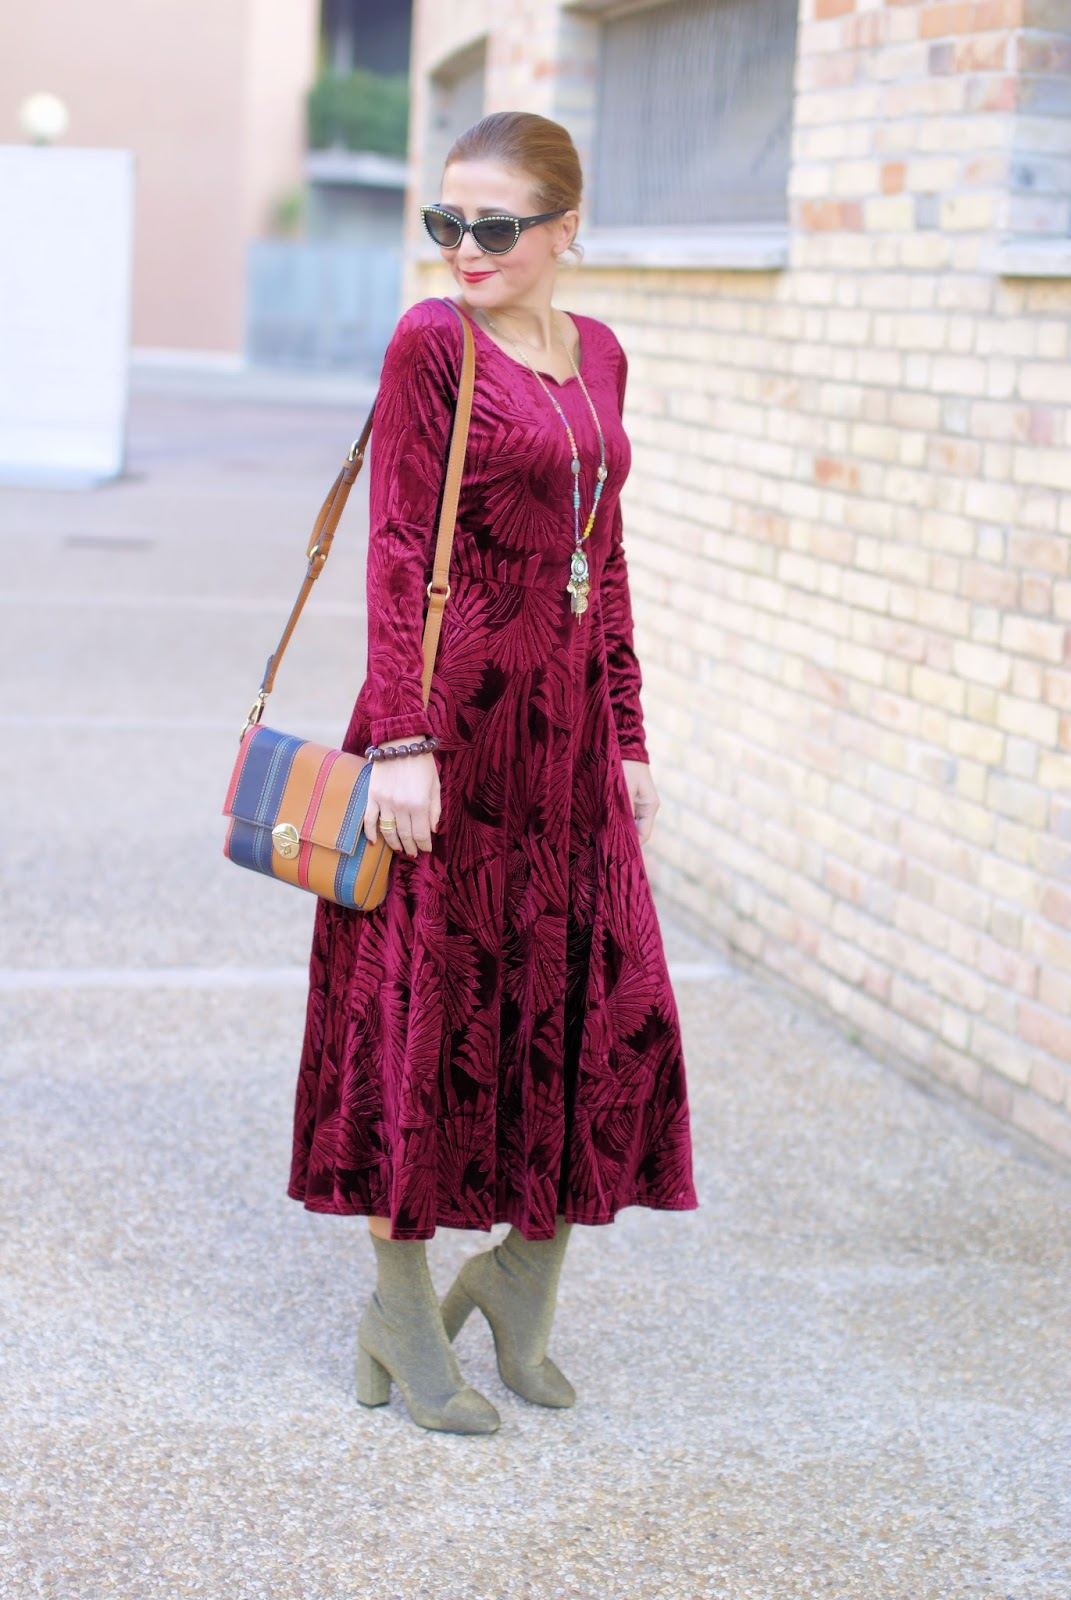 Metisu red velvet maxi dress & sock boots: 70s vibes on Fashion and Cookies fashion blog, fashion blogger style